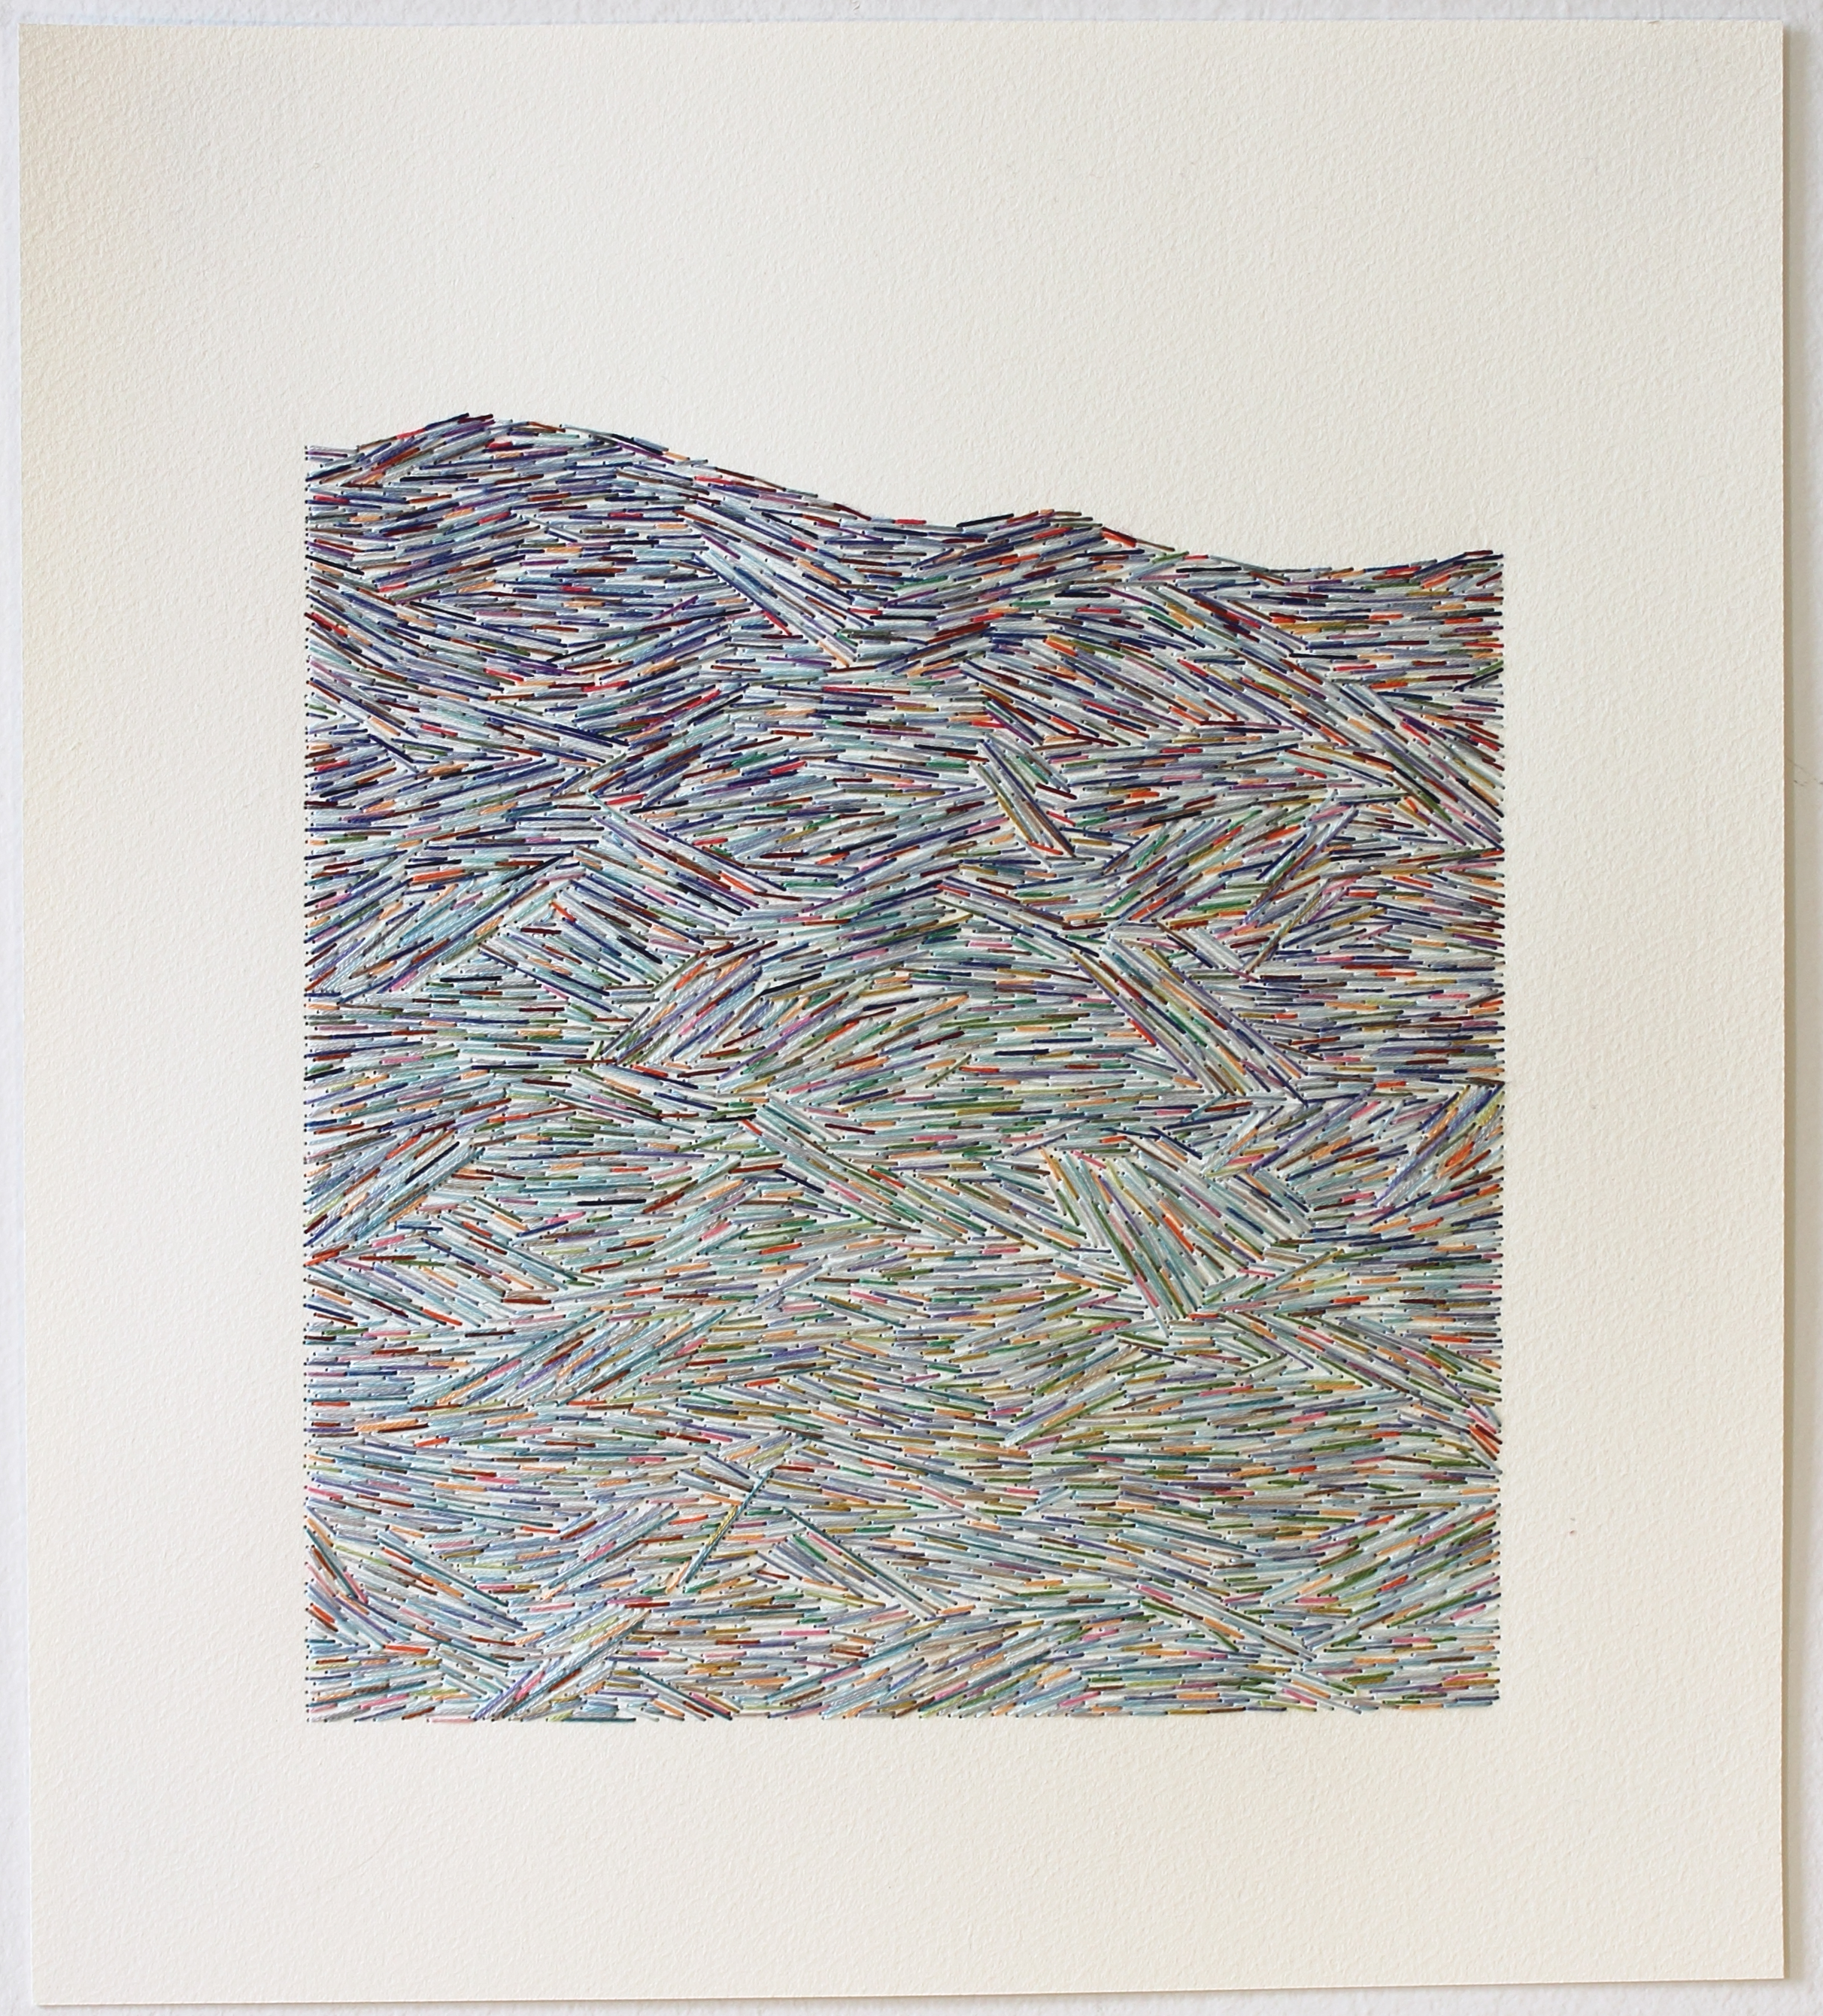 Emily Barletta - UNTITLED 39 - thread and paper